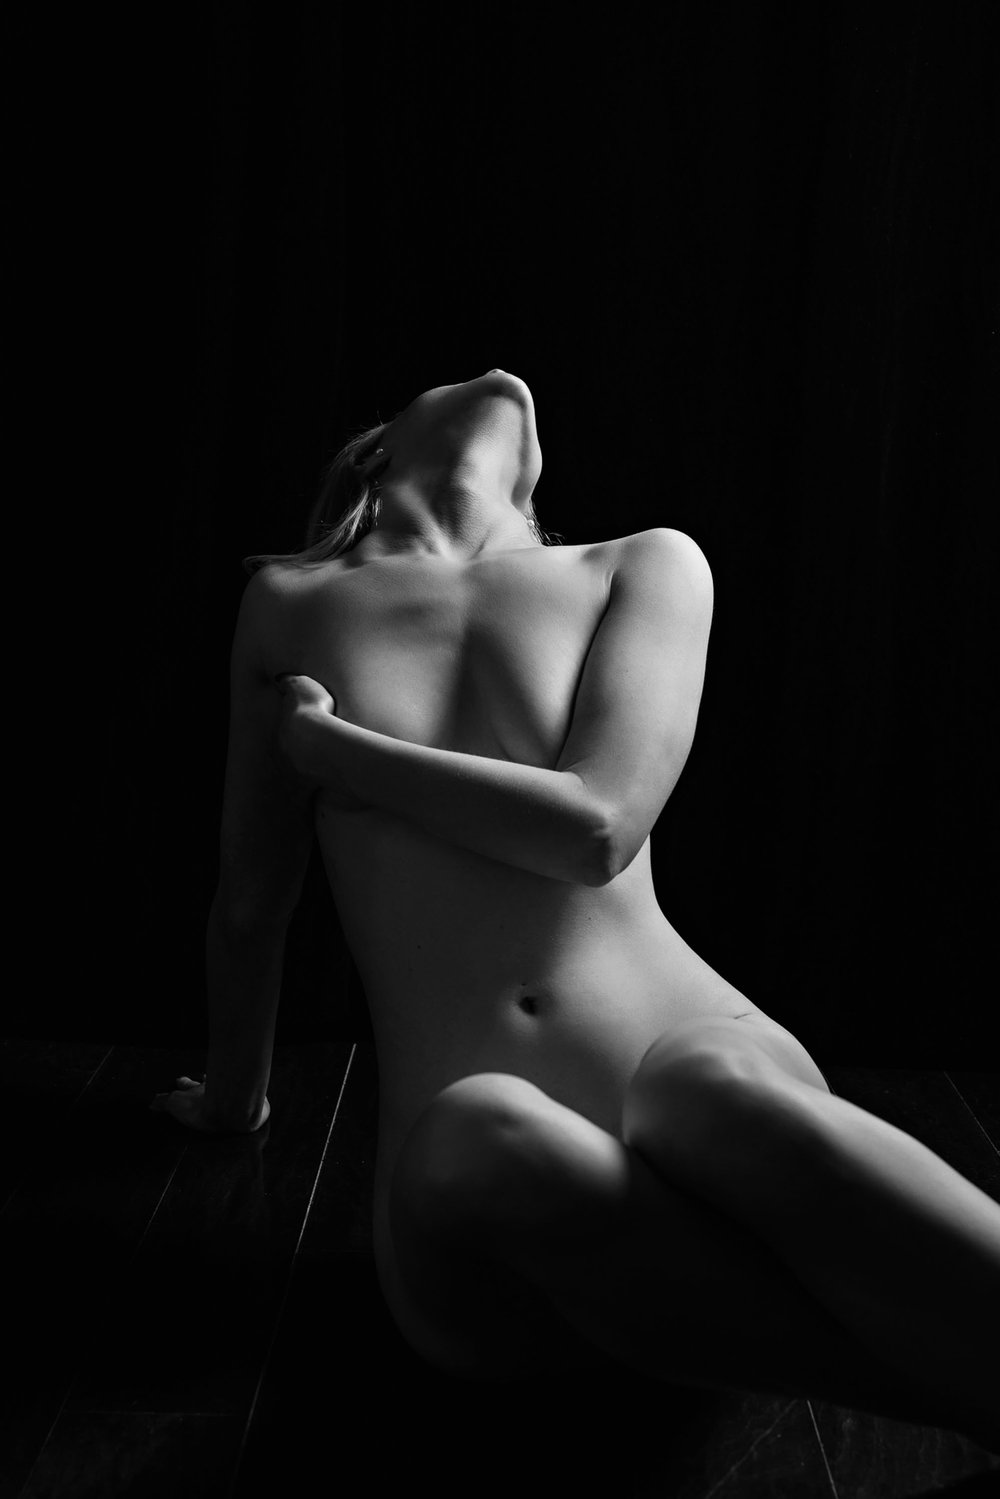 nude-bodyscape-art-photo-20.jpg